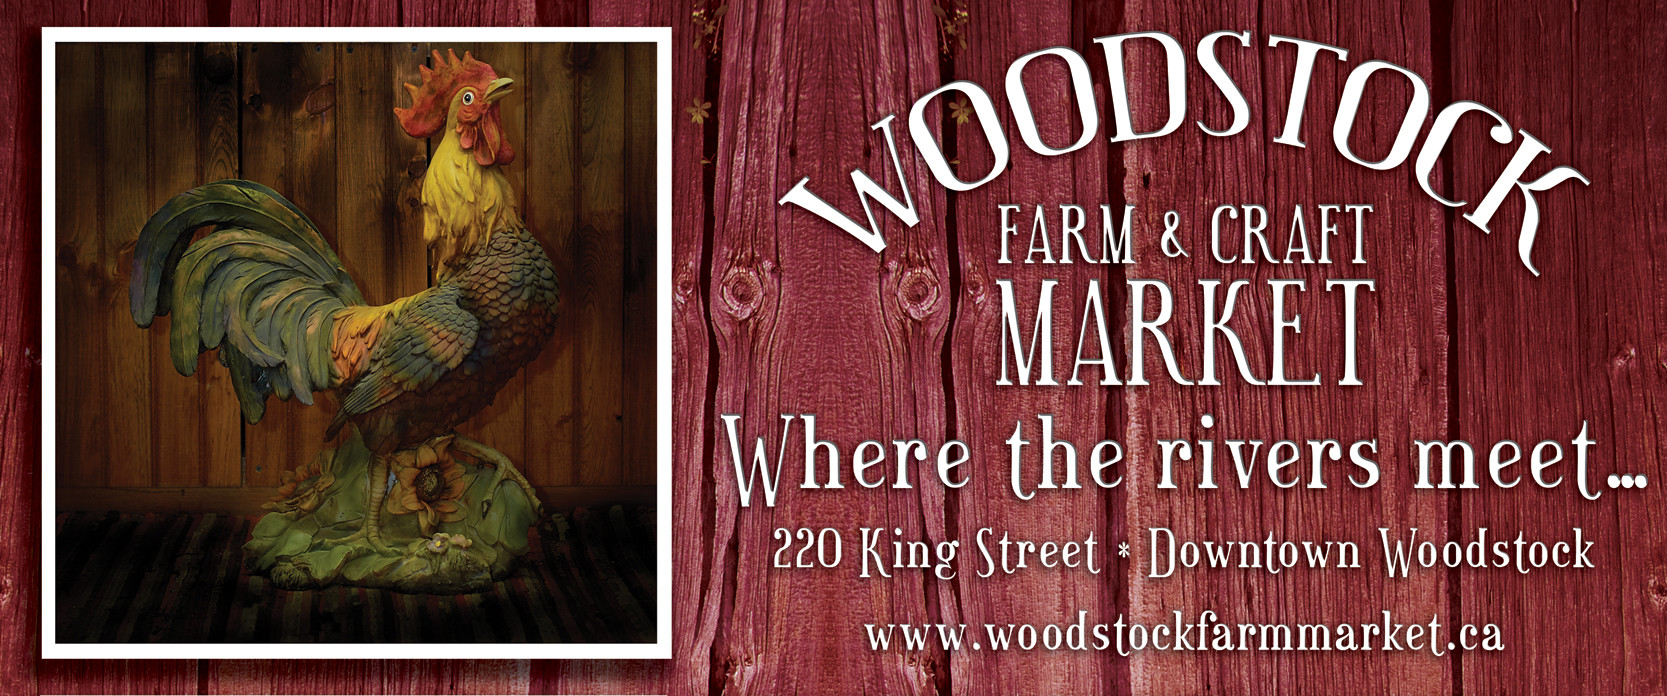 Woodstock Farm & Craft Market